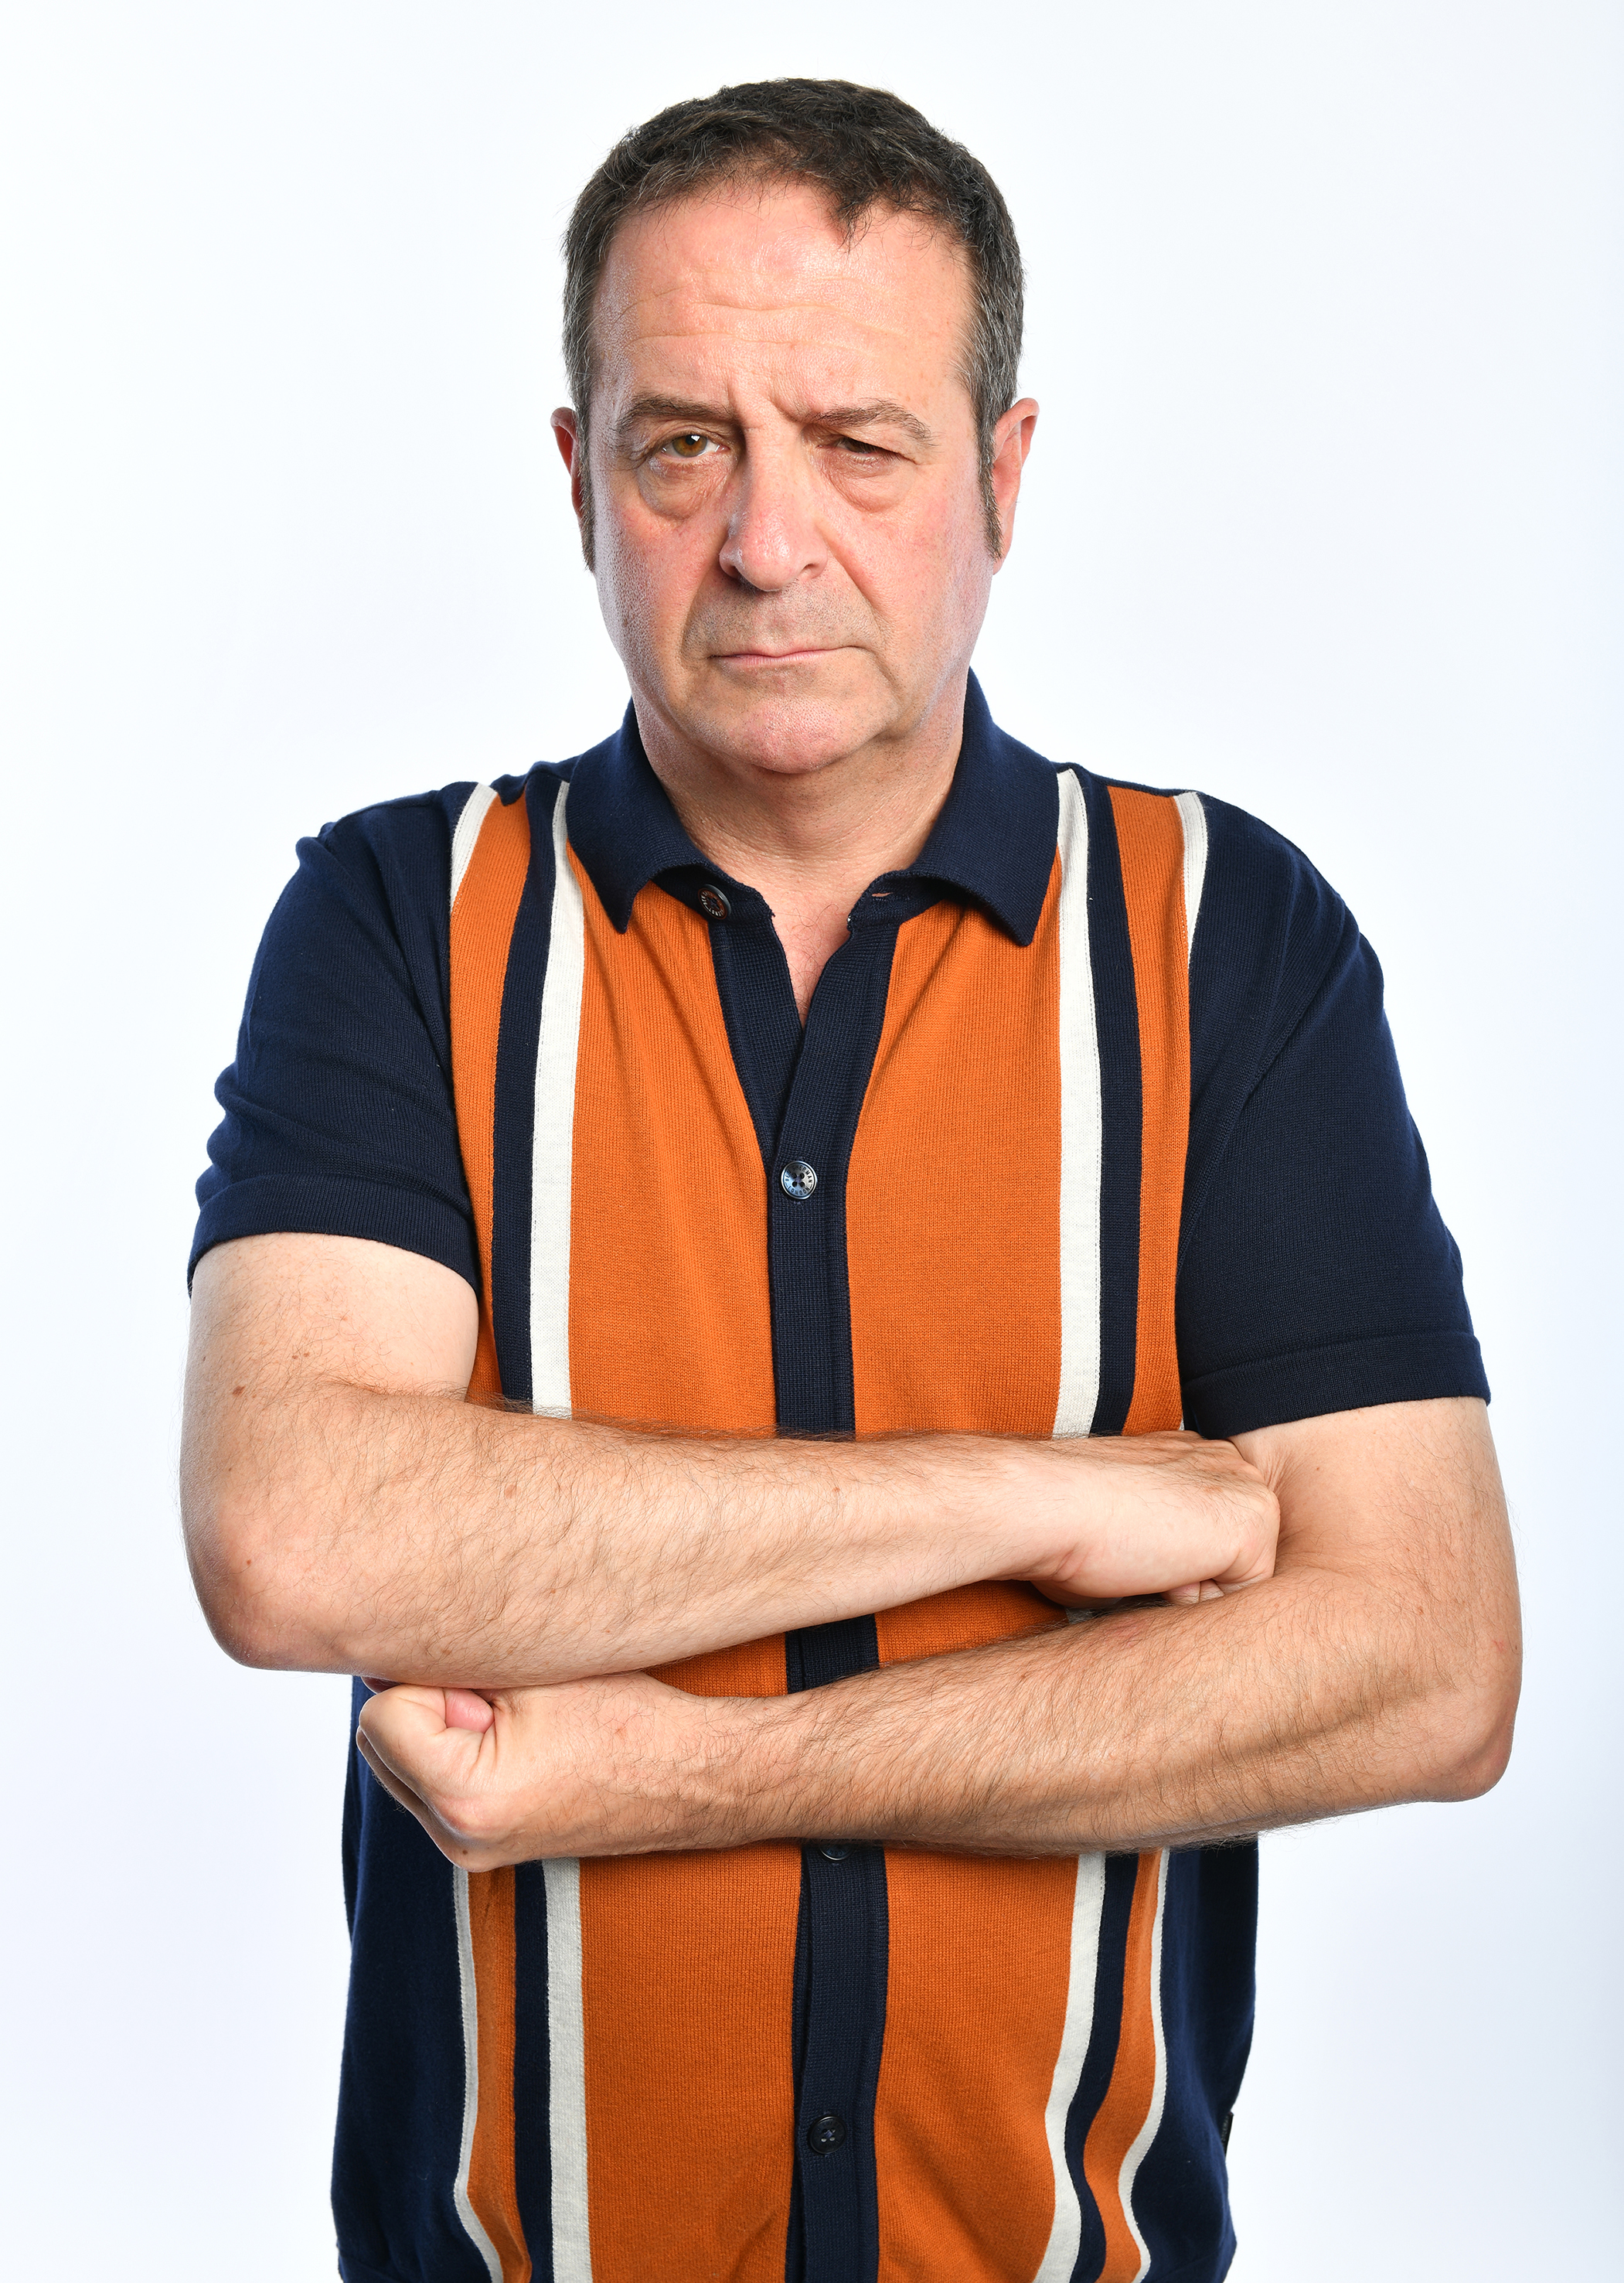 Comedian Mark Thomas to explore our national identities through storytelling and stand-up